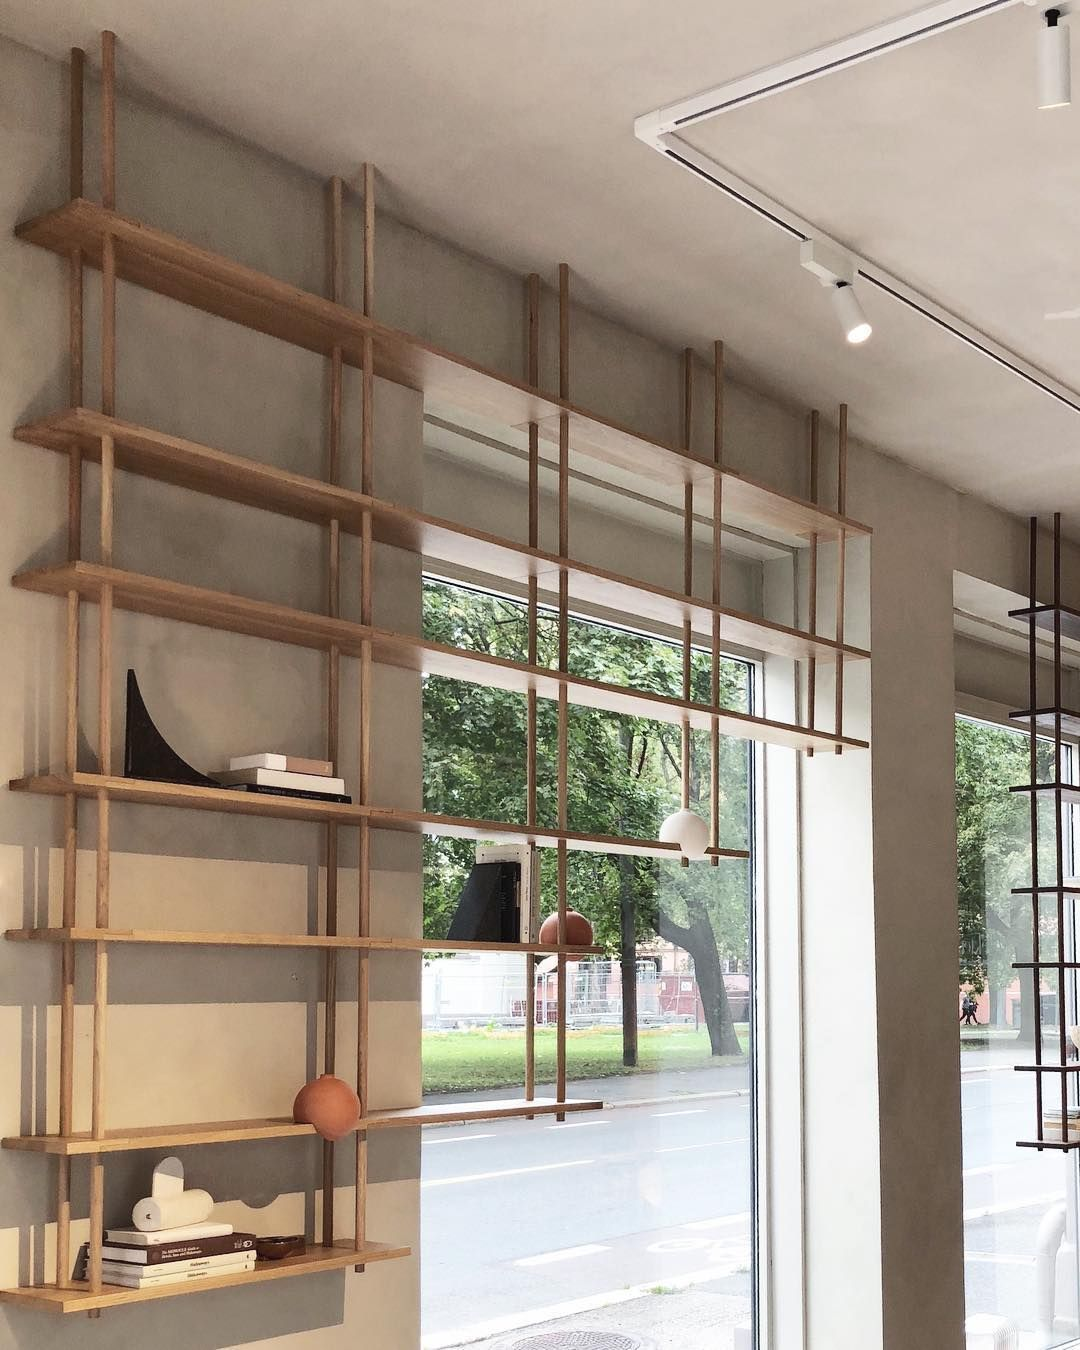 Regal Stedge New Product From Fogia Bond Shelving System In Oak Or Walnut